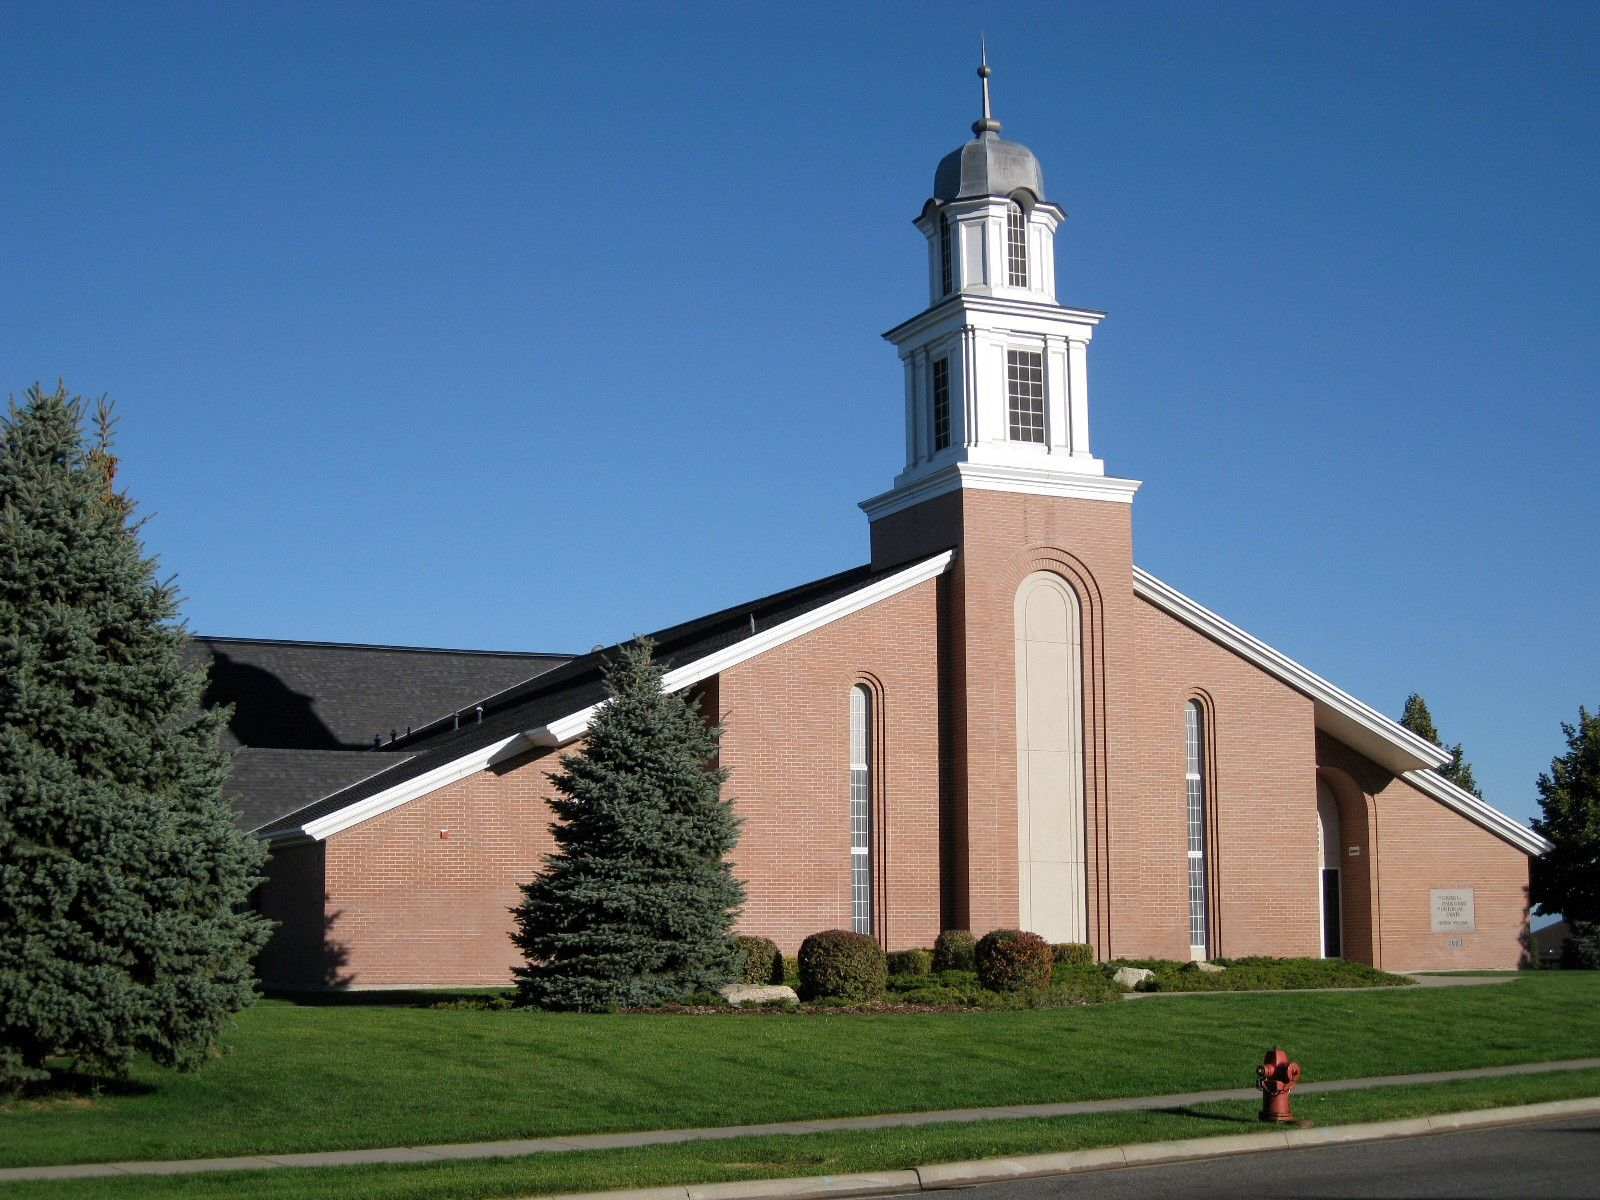 The front view of a chapel in North Salt Lake, Utah.